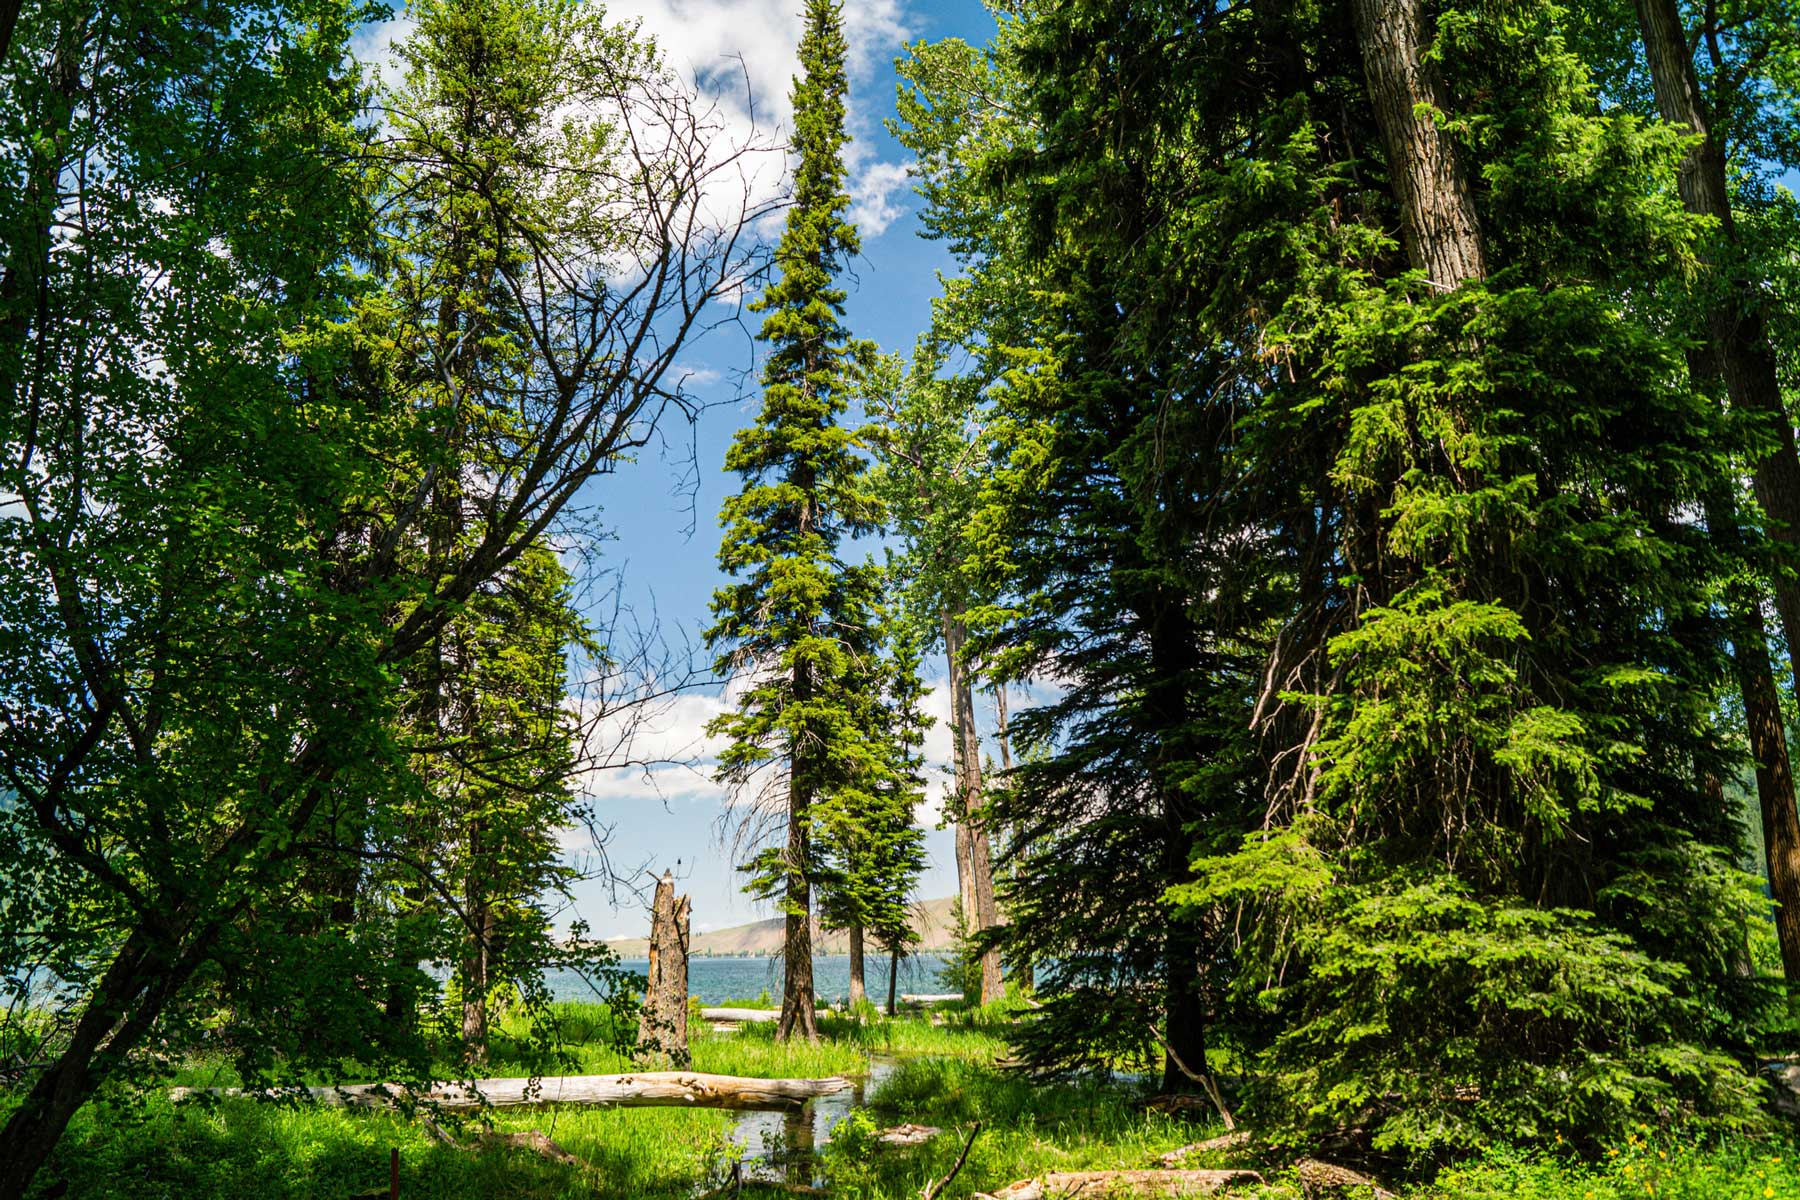 Evergreen trees at Wallowa Lake State Park in Oregon, USA